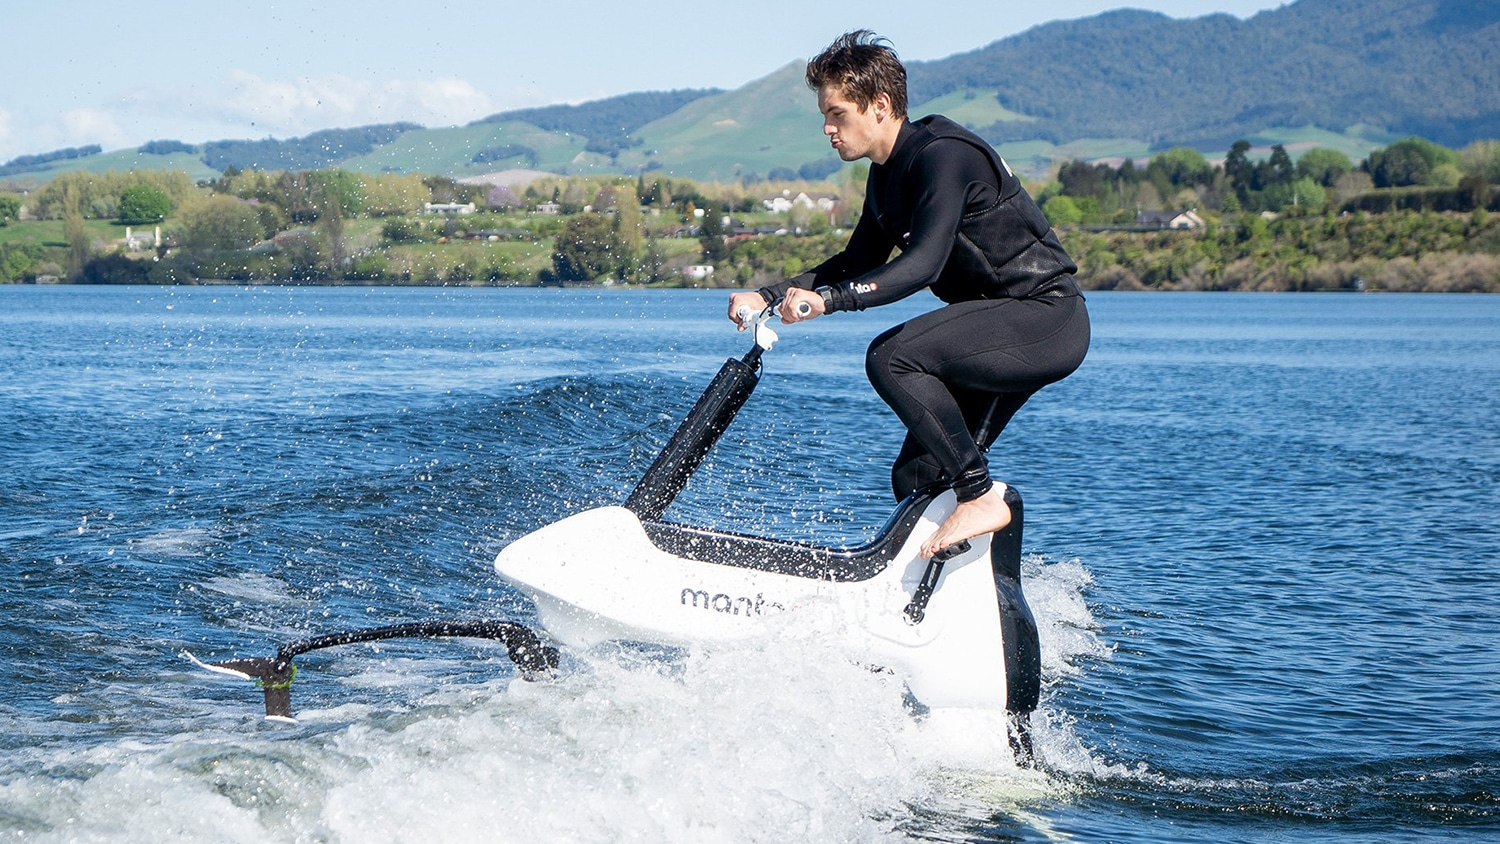 Manta5 Hydrofoiler XE-1, an electric bike to ride on the water